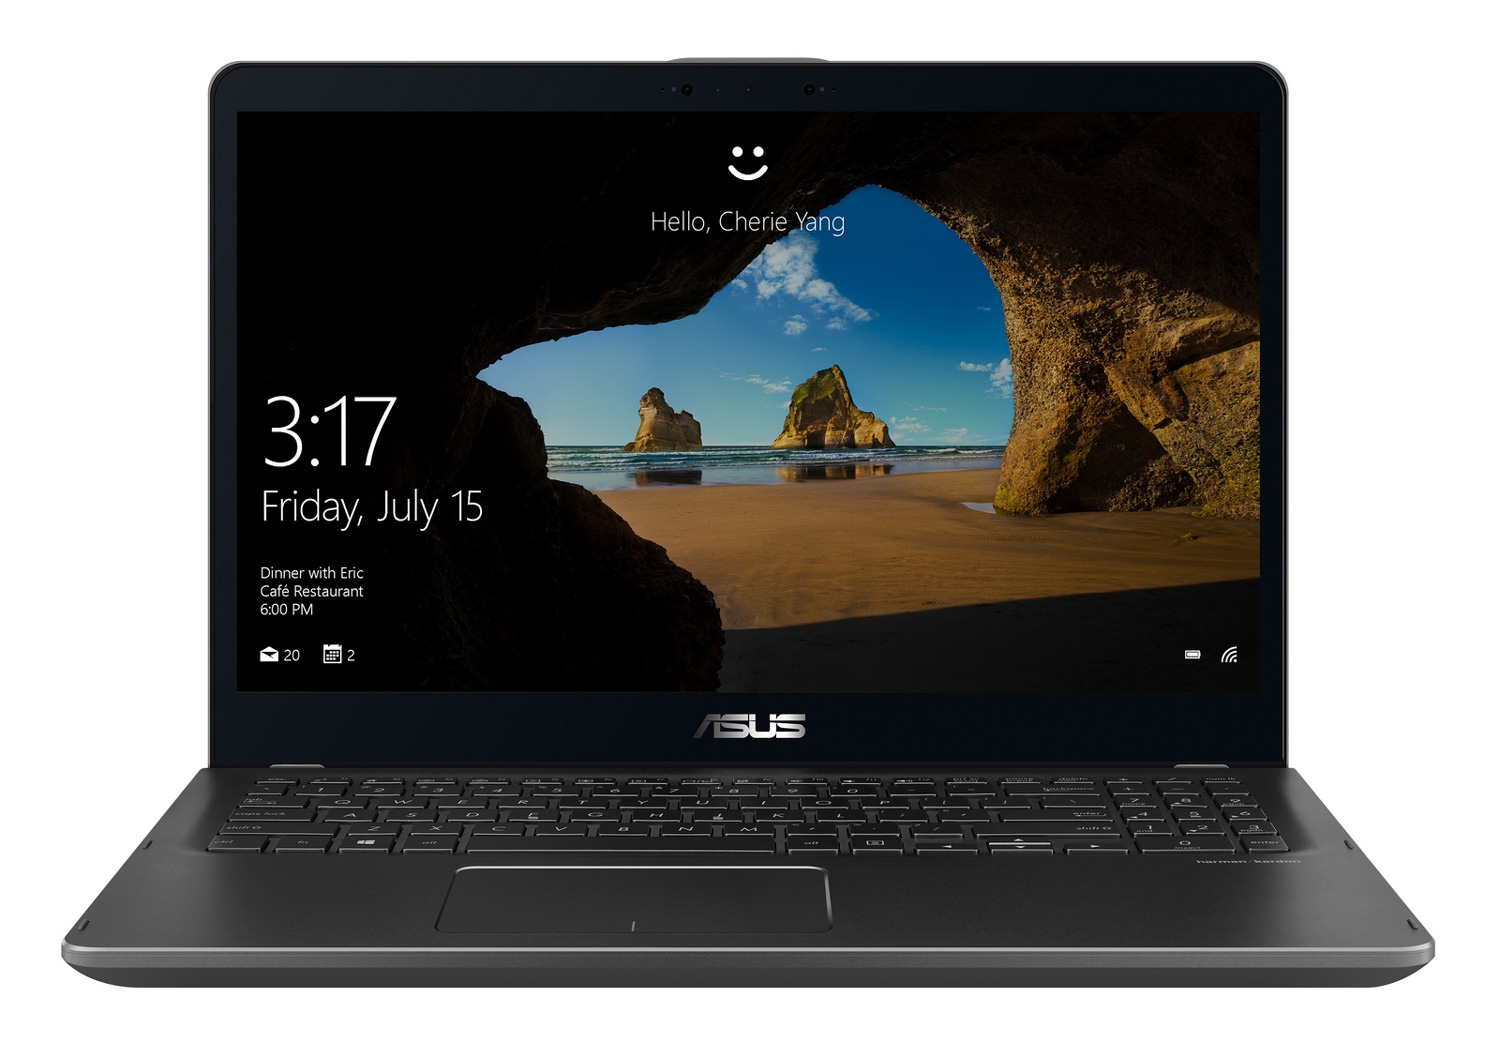 https://www.comparez-malin.fr/blog/wp-content/uploads/2017/09/asus-zenbook-flip-15-1.jpg